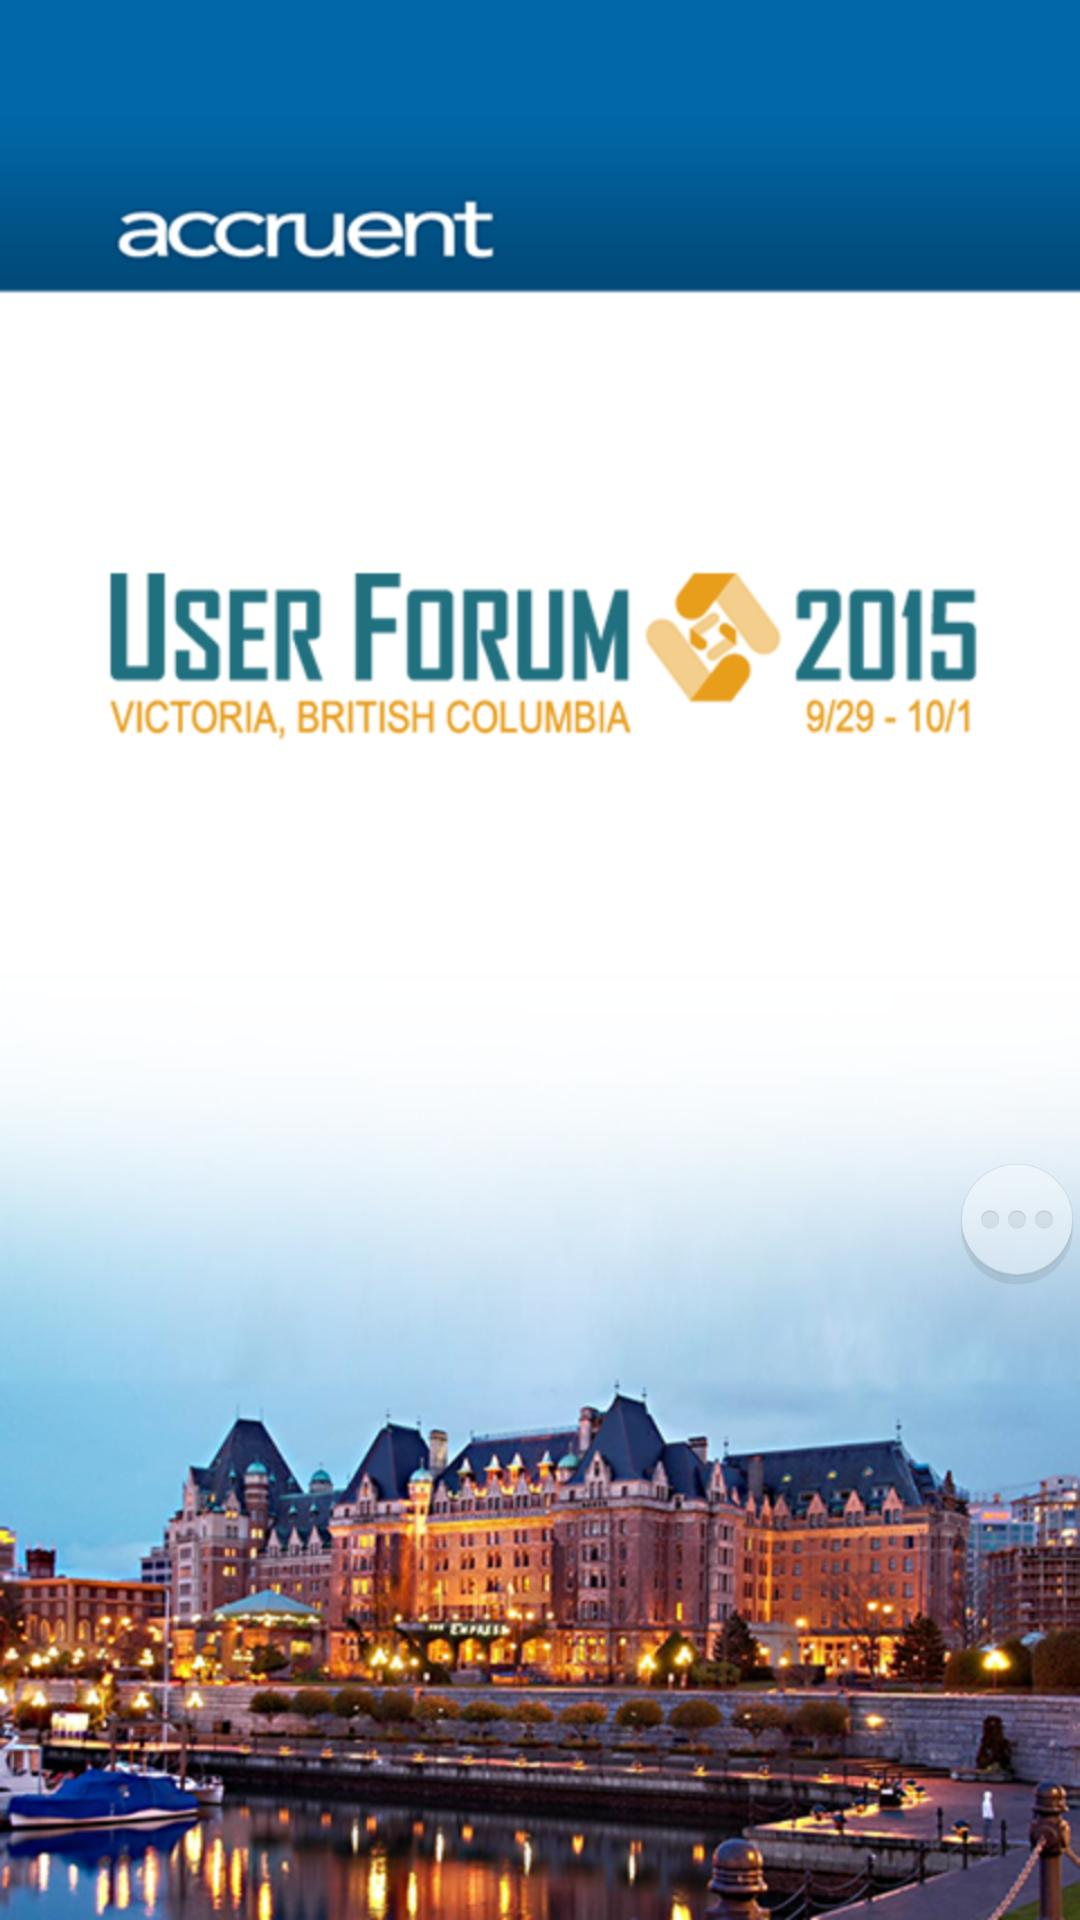 User Forum poster